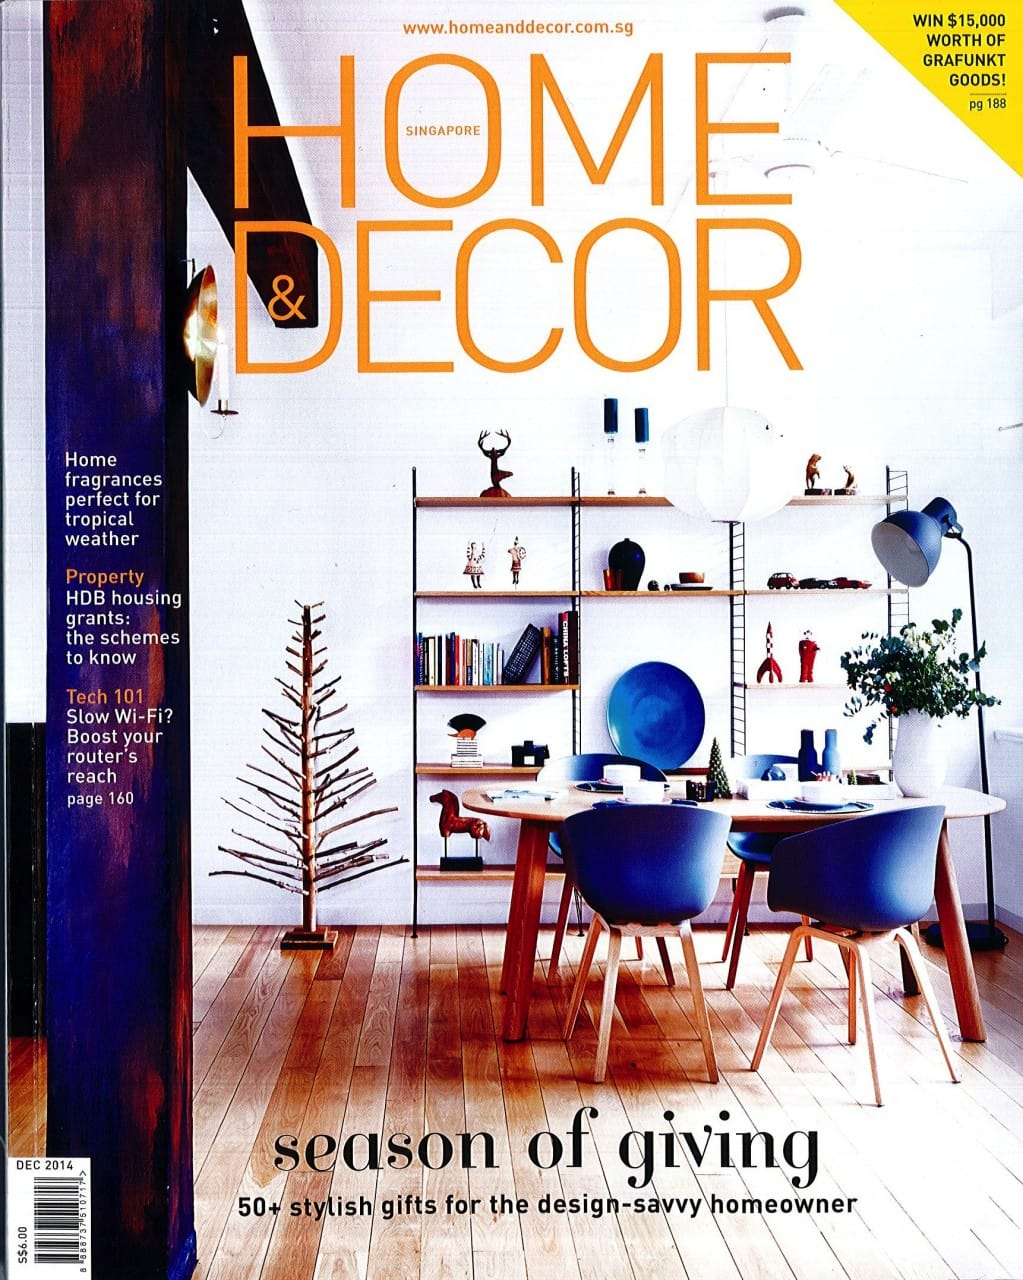 Home & Decor - December 2014